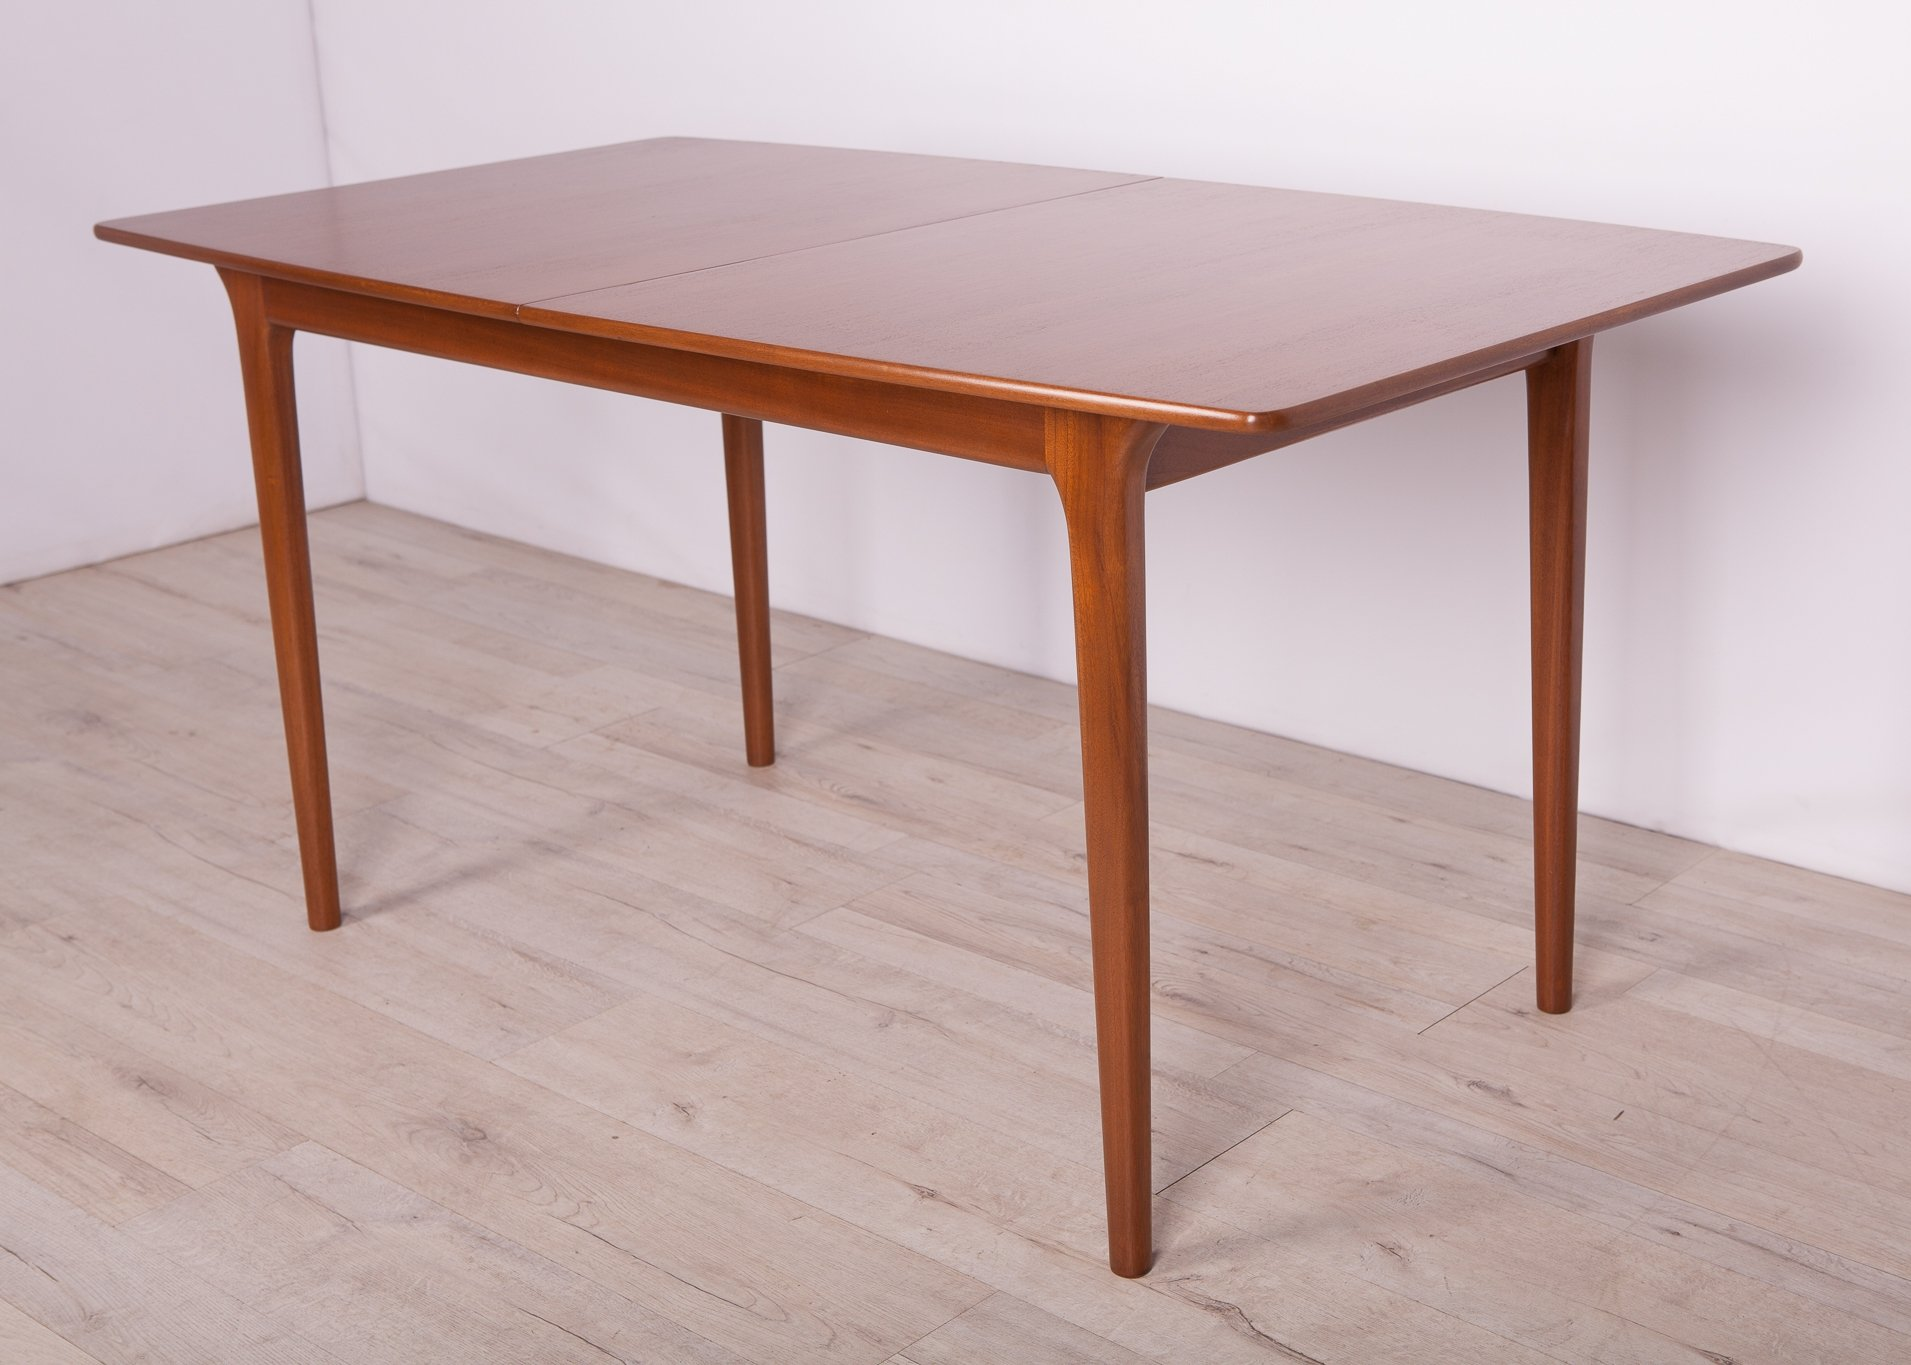 Mid Century Teak Extendable Dining Table From Mcintosh 1960s 138285